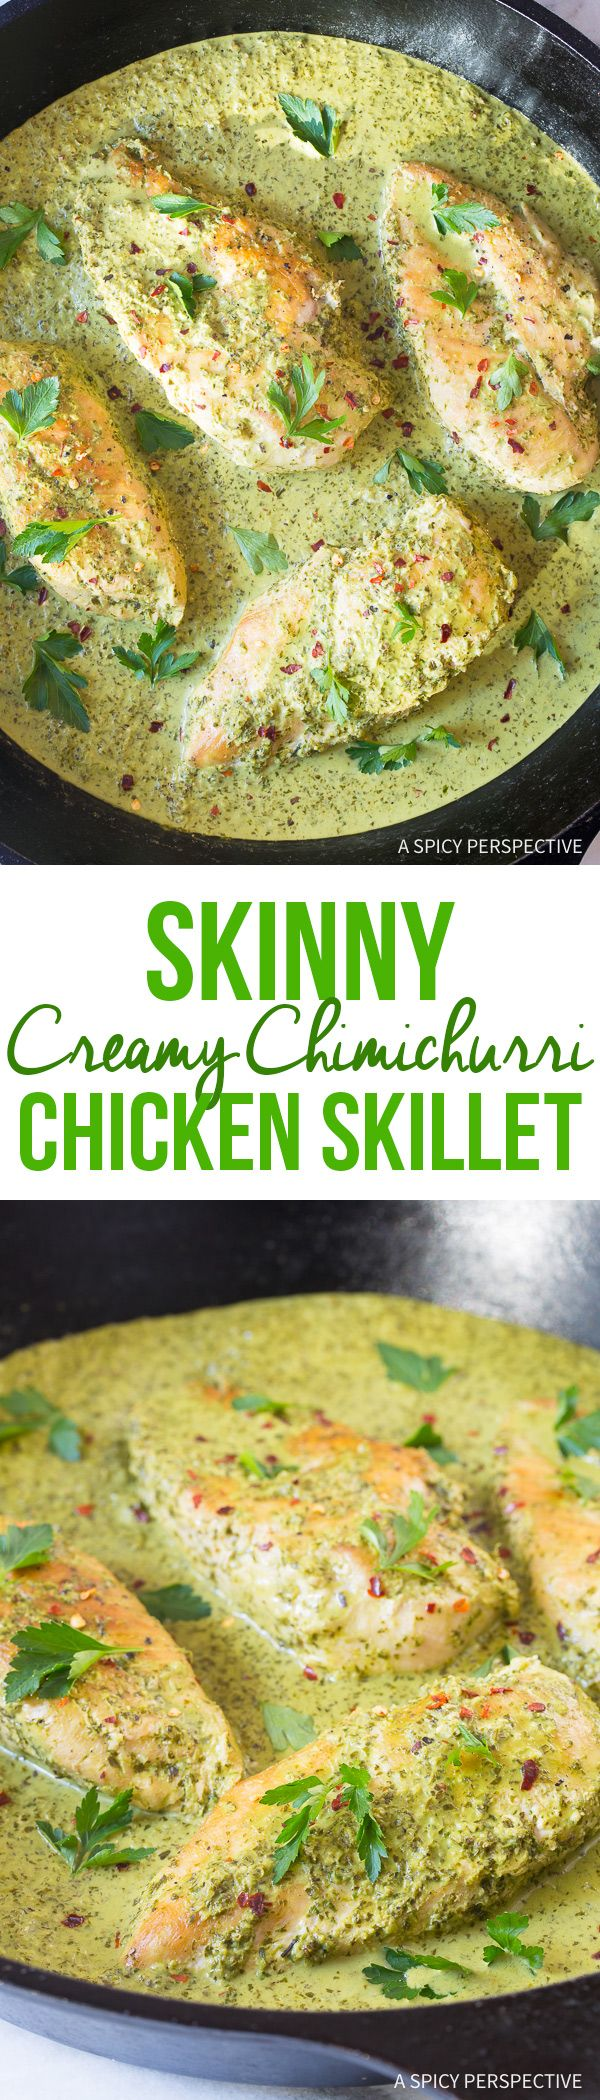 Skinny Creamy Chimichurri Chicken Skillet Recipe - A zesty low fat, low carb, gluten free chicken dinner you can make in minutes! via @spicyperspectiv